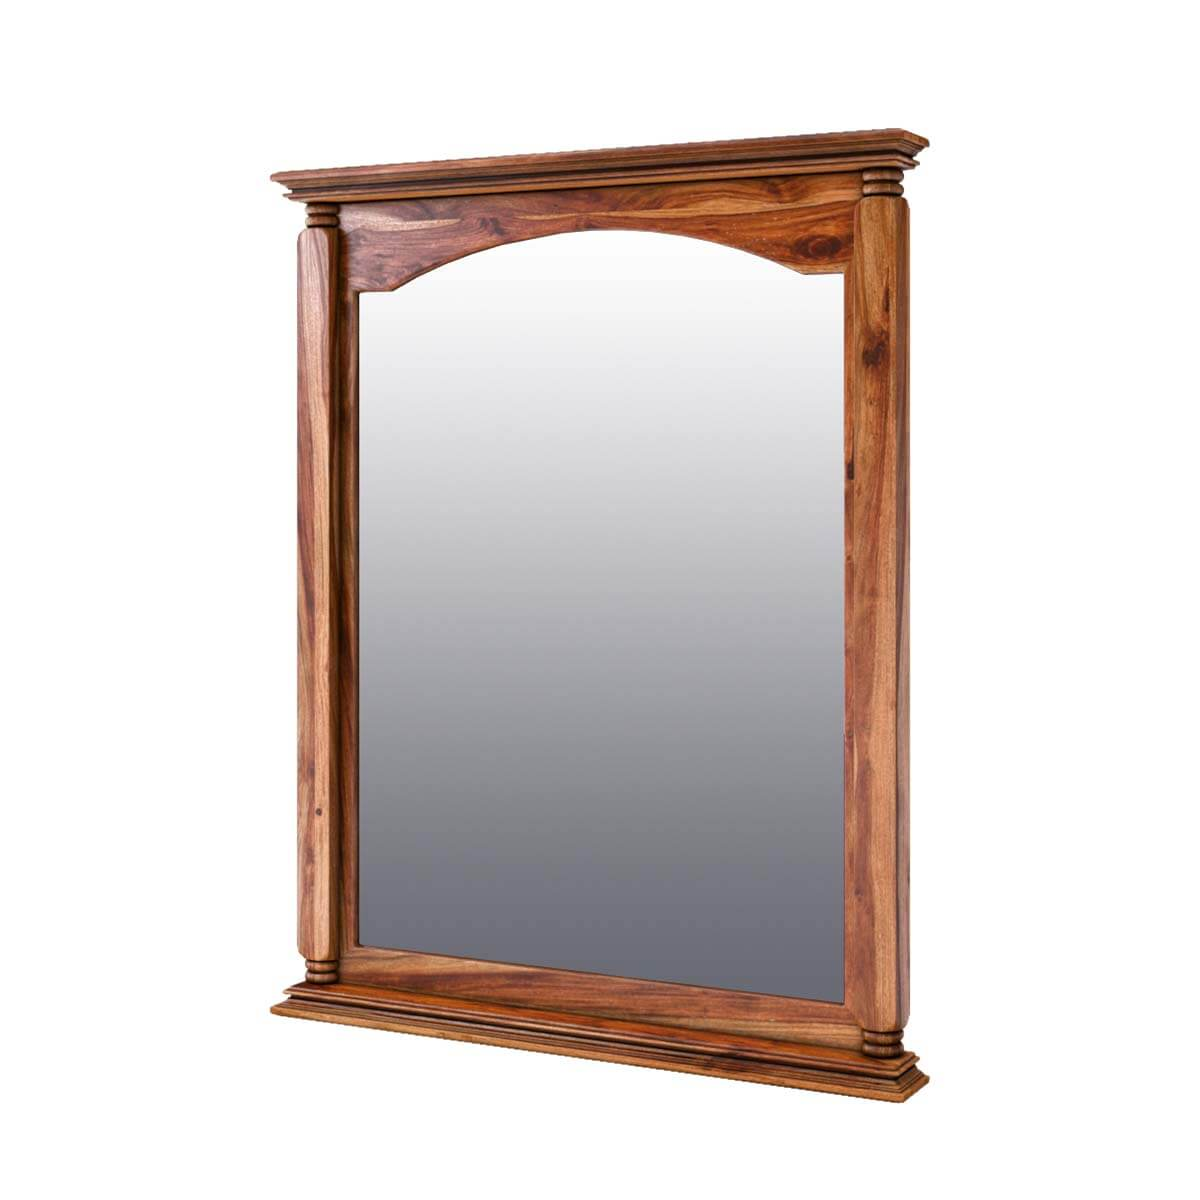 Livingston Solid Wood Rustic Mirror Frame